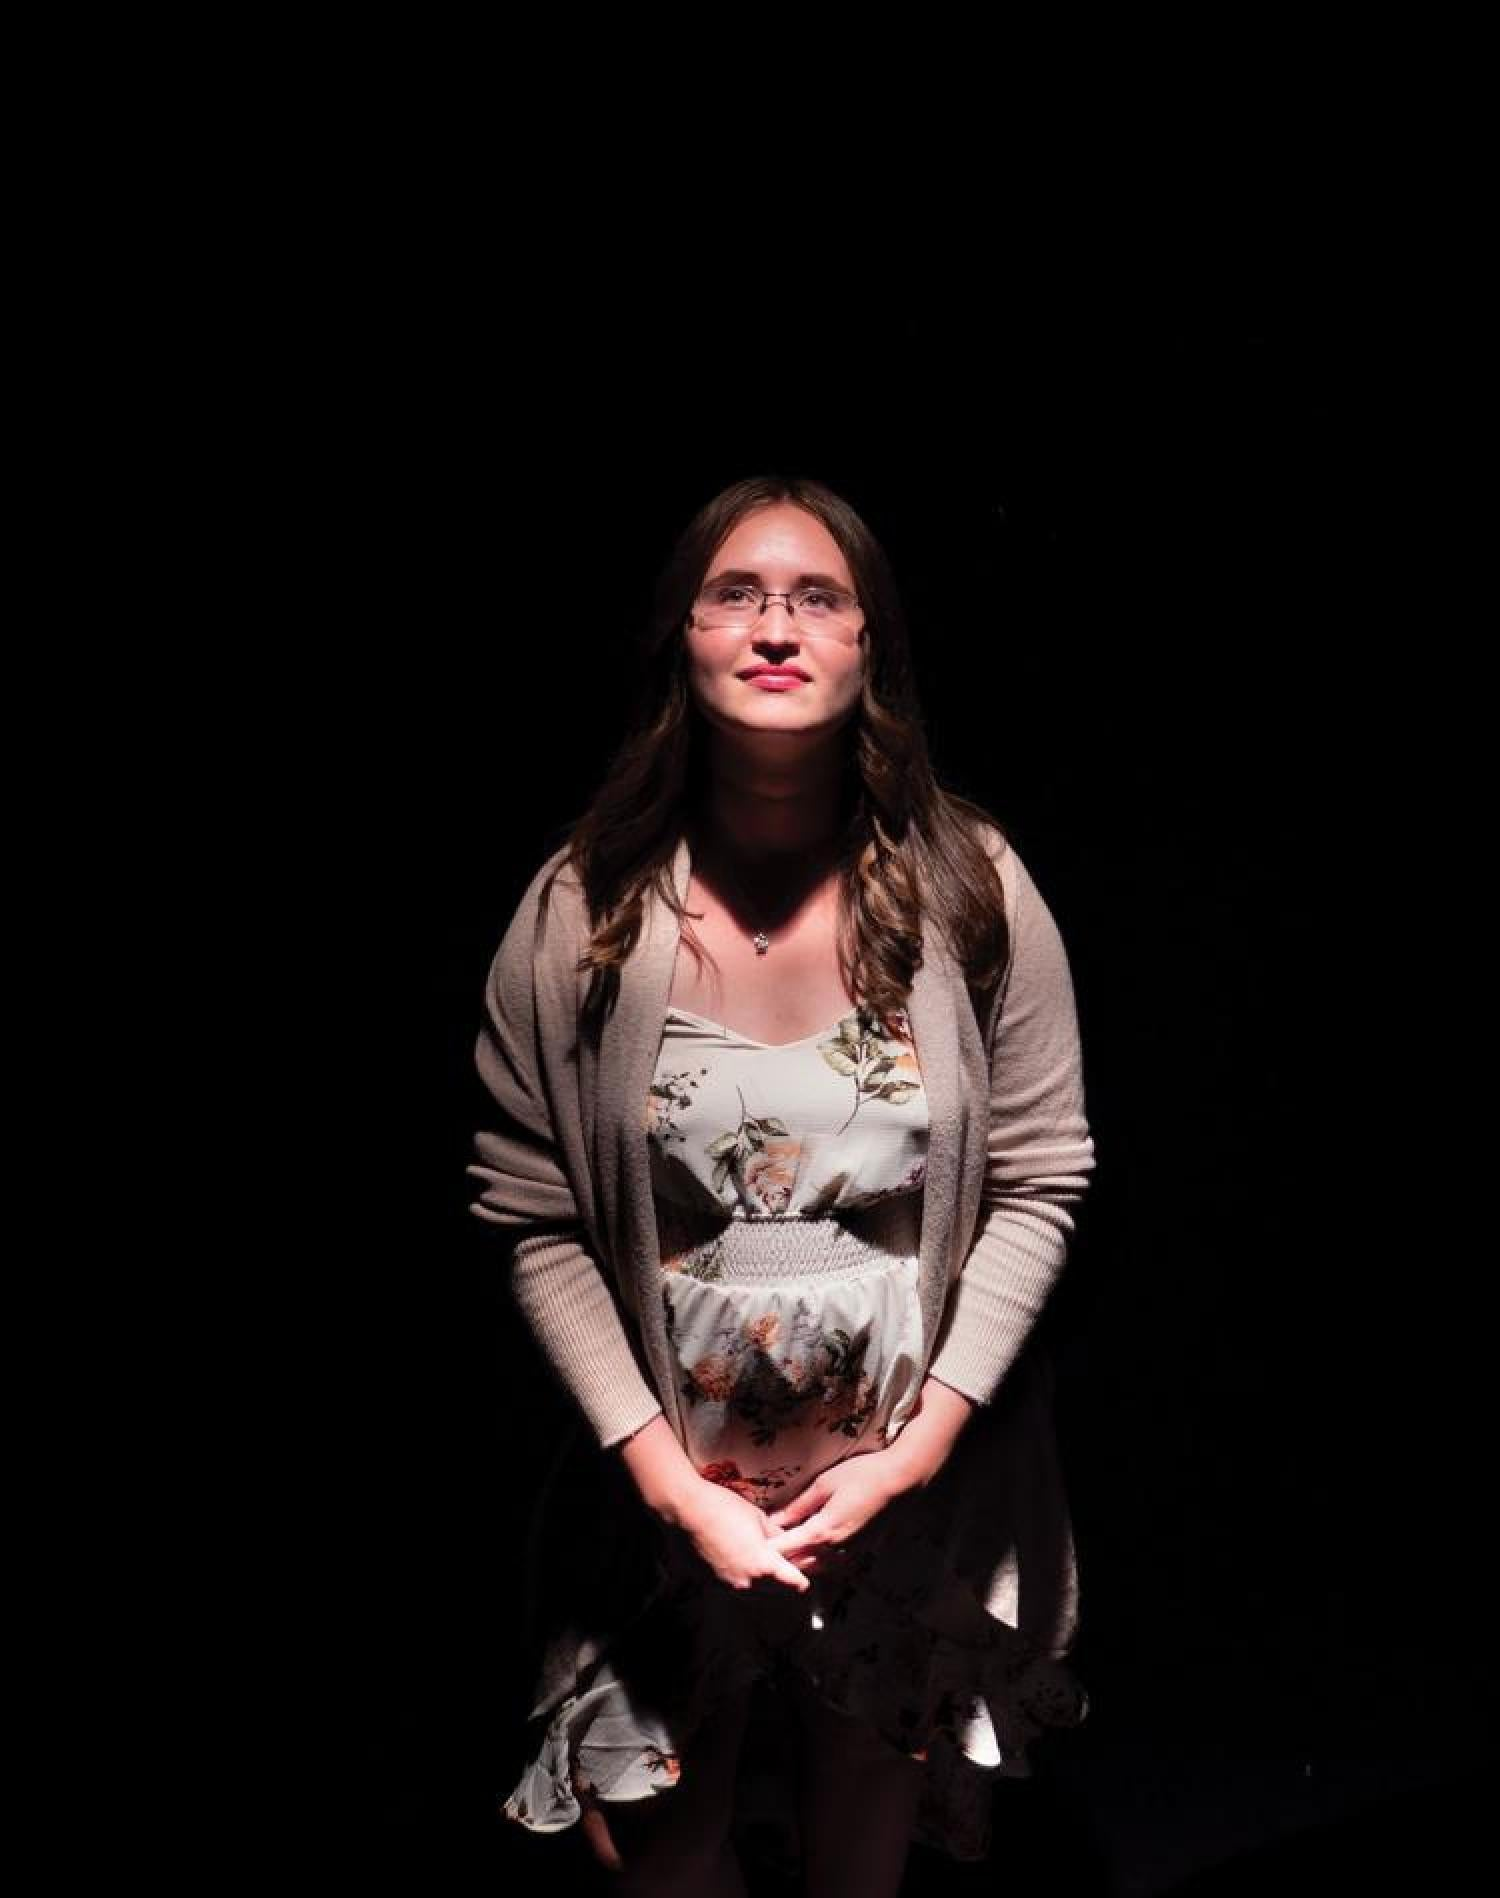 Photo of Michelle Galetti surrounded by darkness